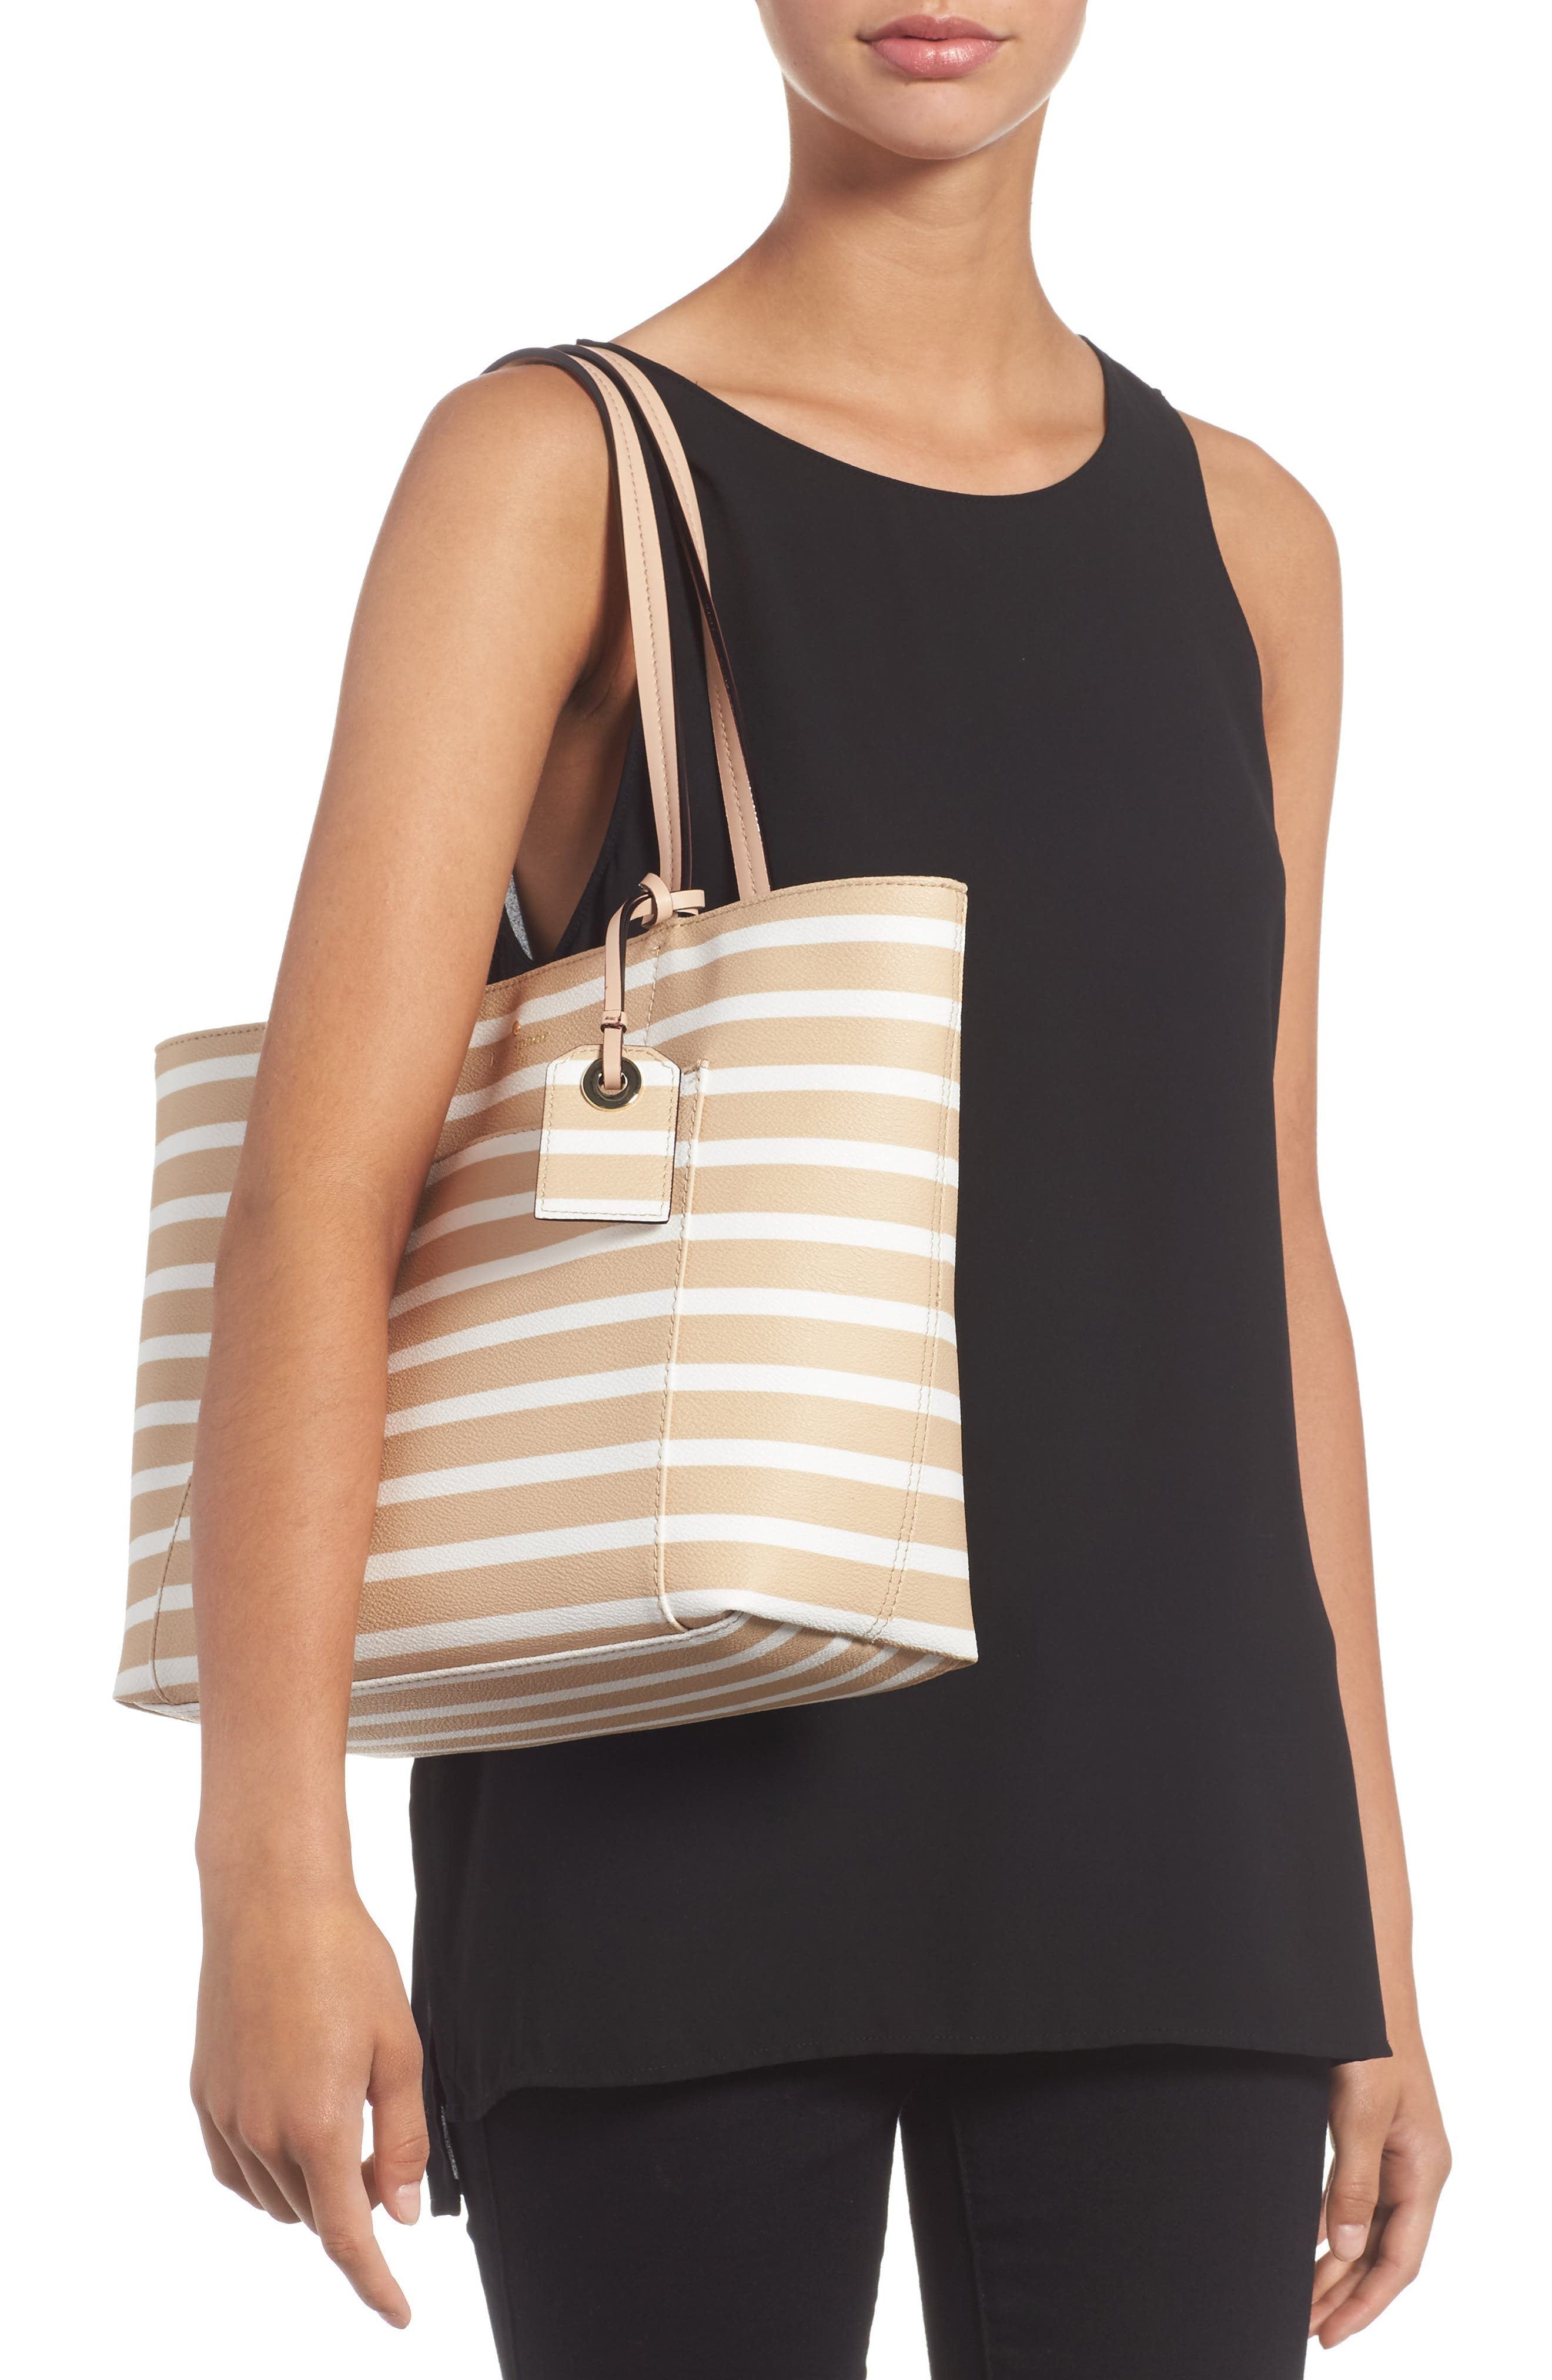 hyde lane - small riley faux leather tote,                             Alternate thumbnail 2, color,                             Classic Camel/ Cream